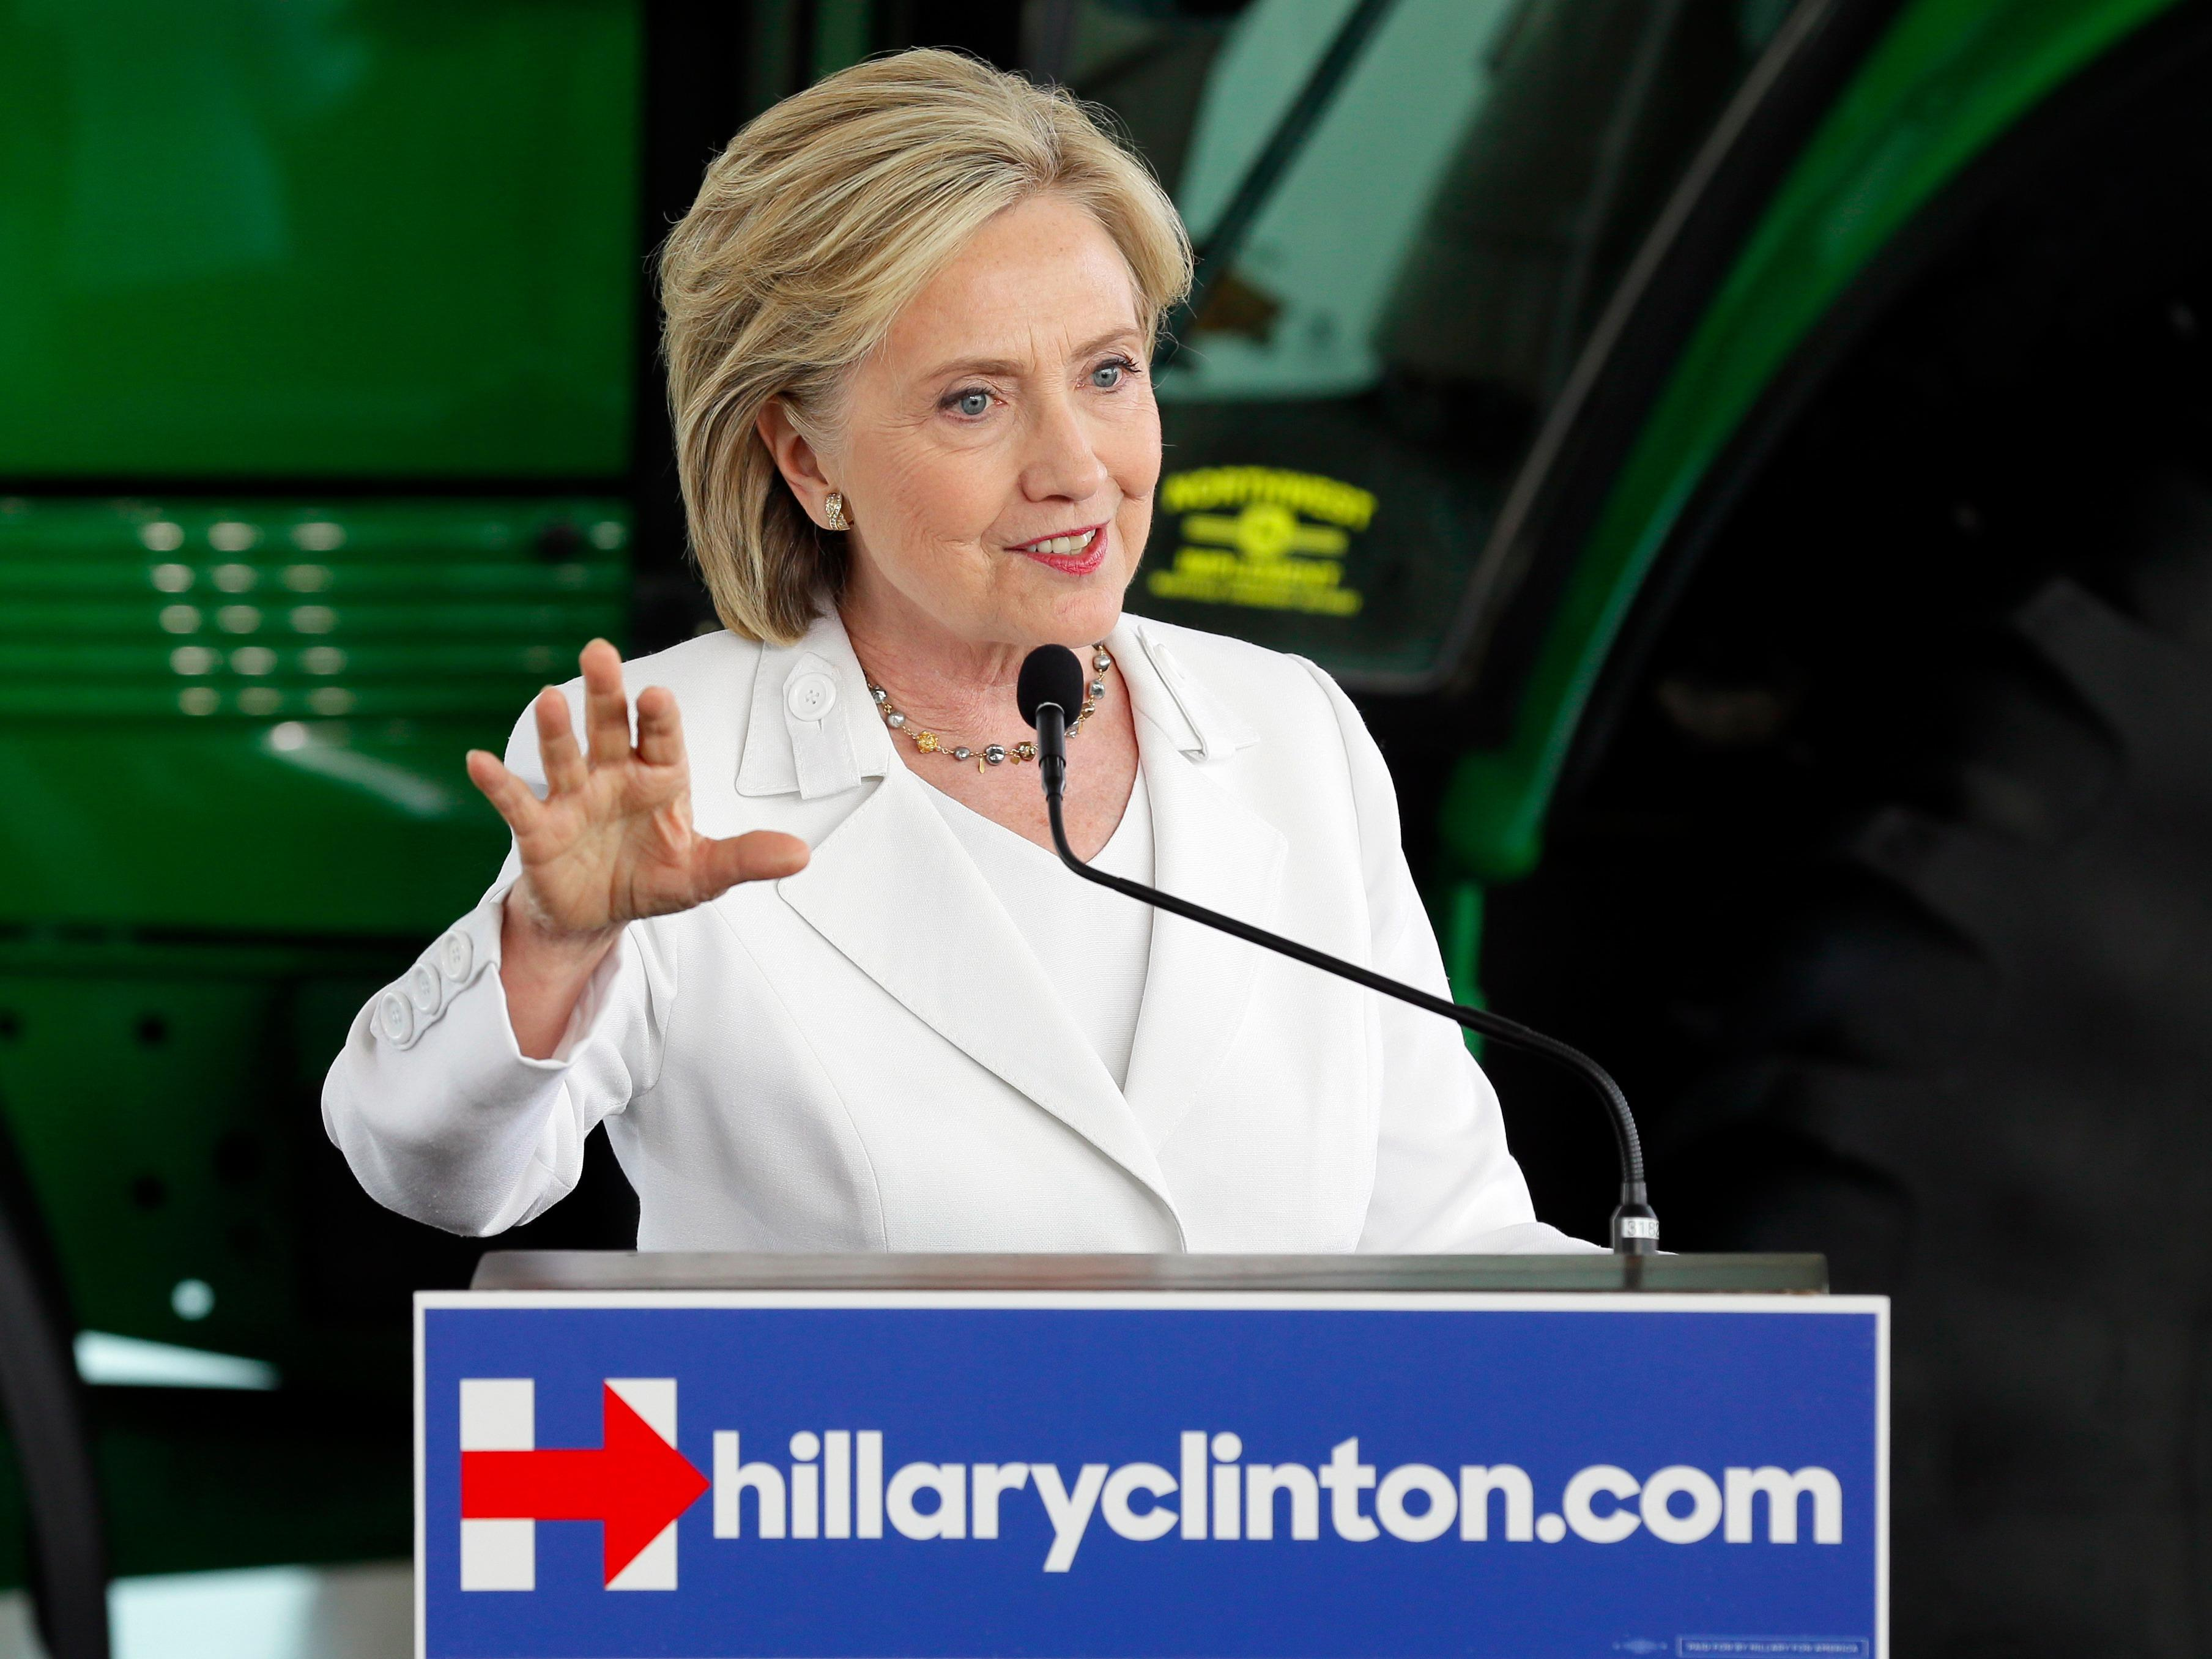 Hillary Clinton on Virginia journalist shooting: 'We must act to stop gun violence'